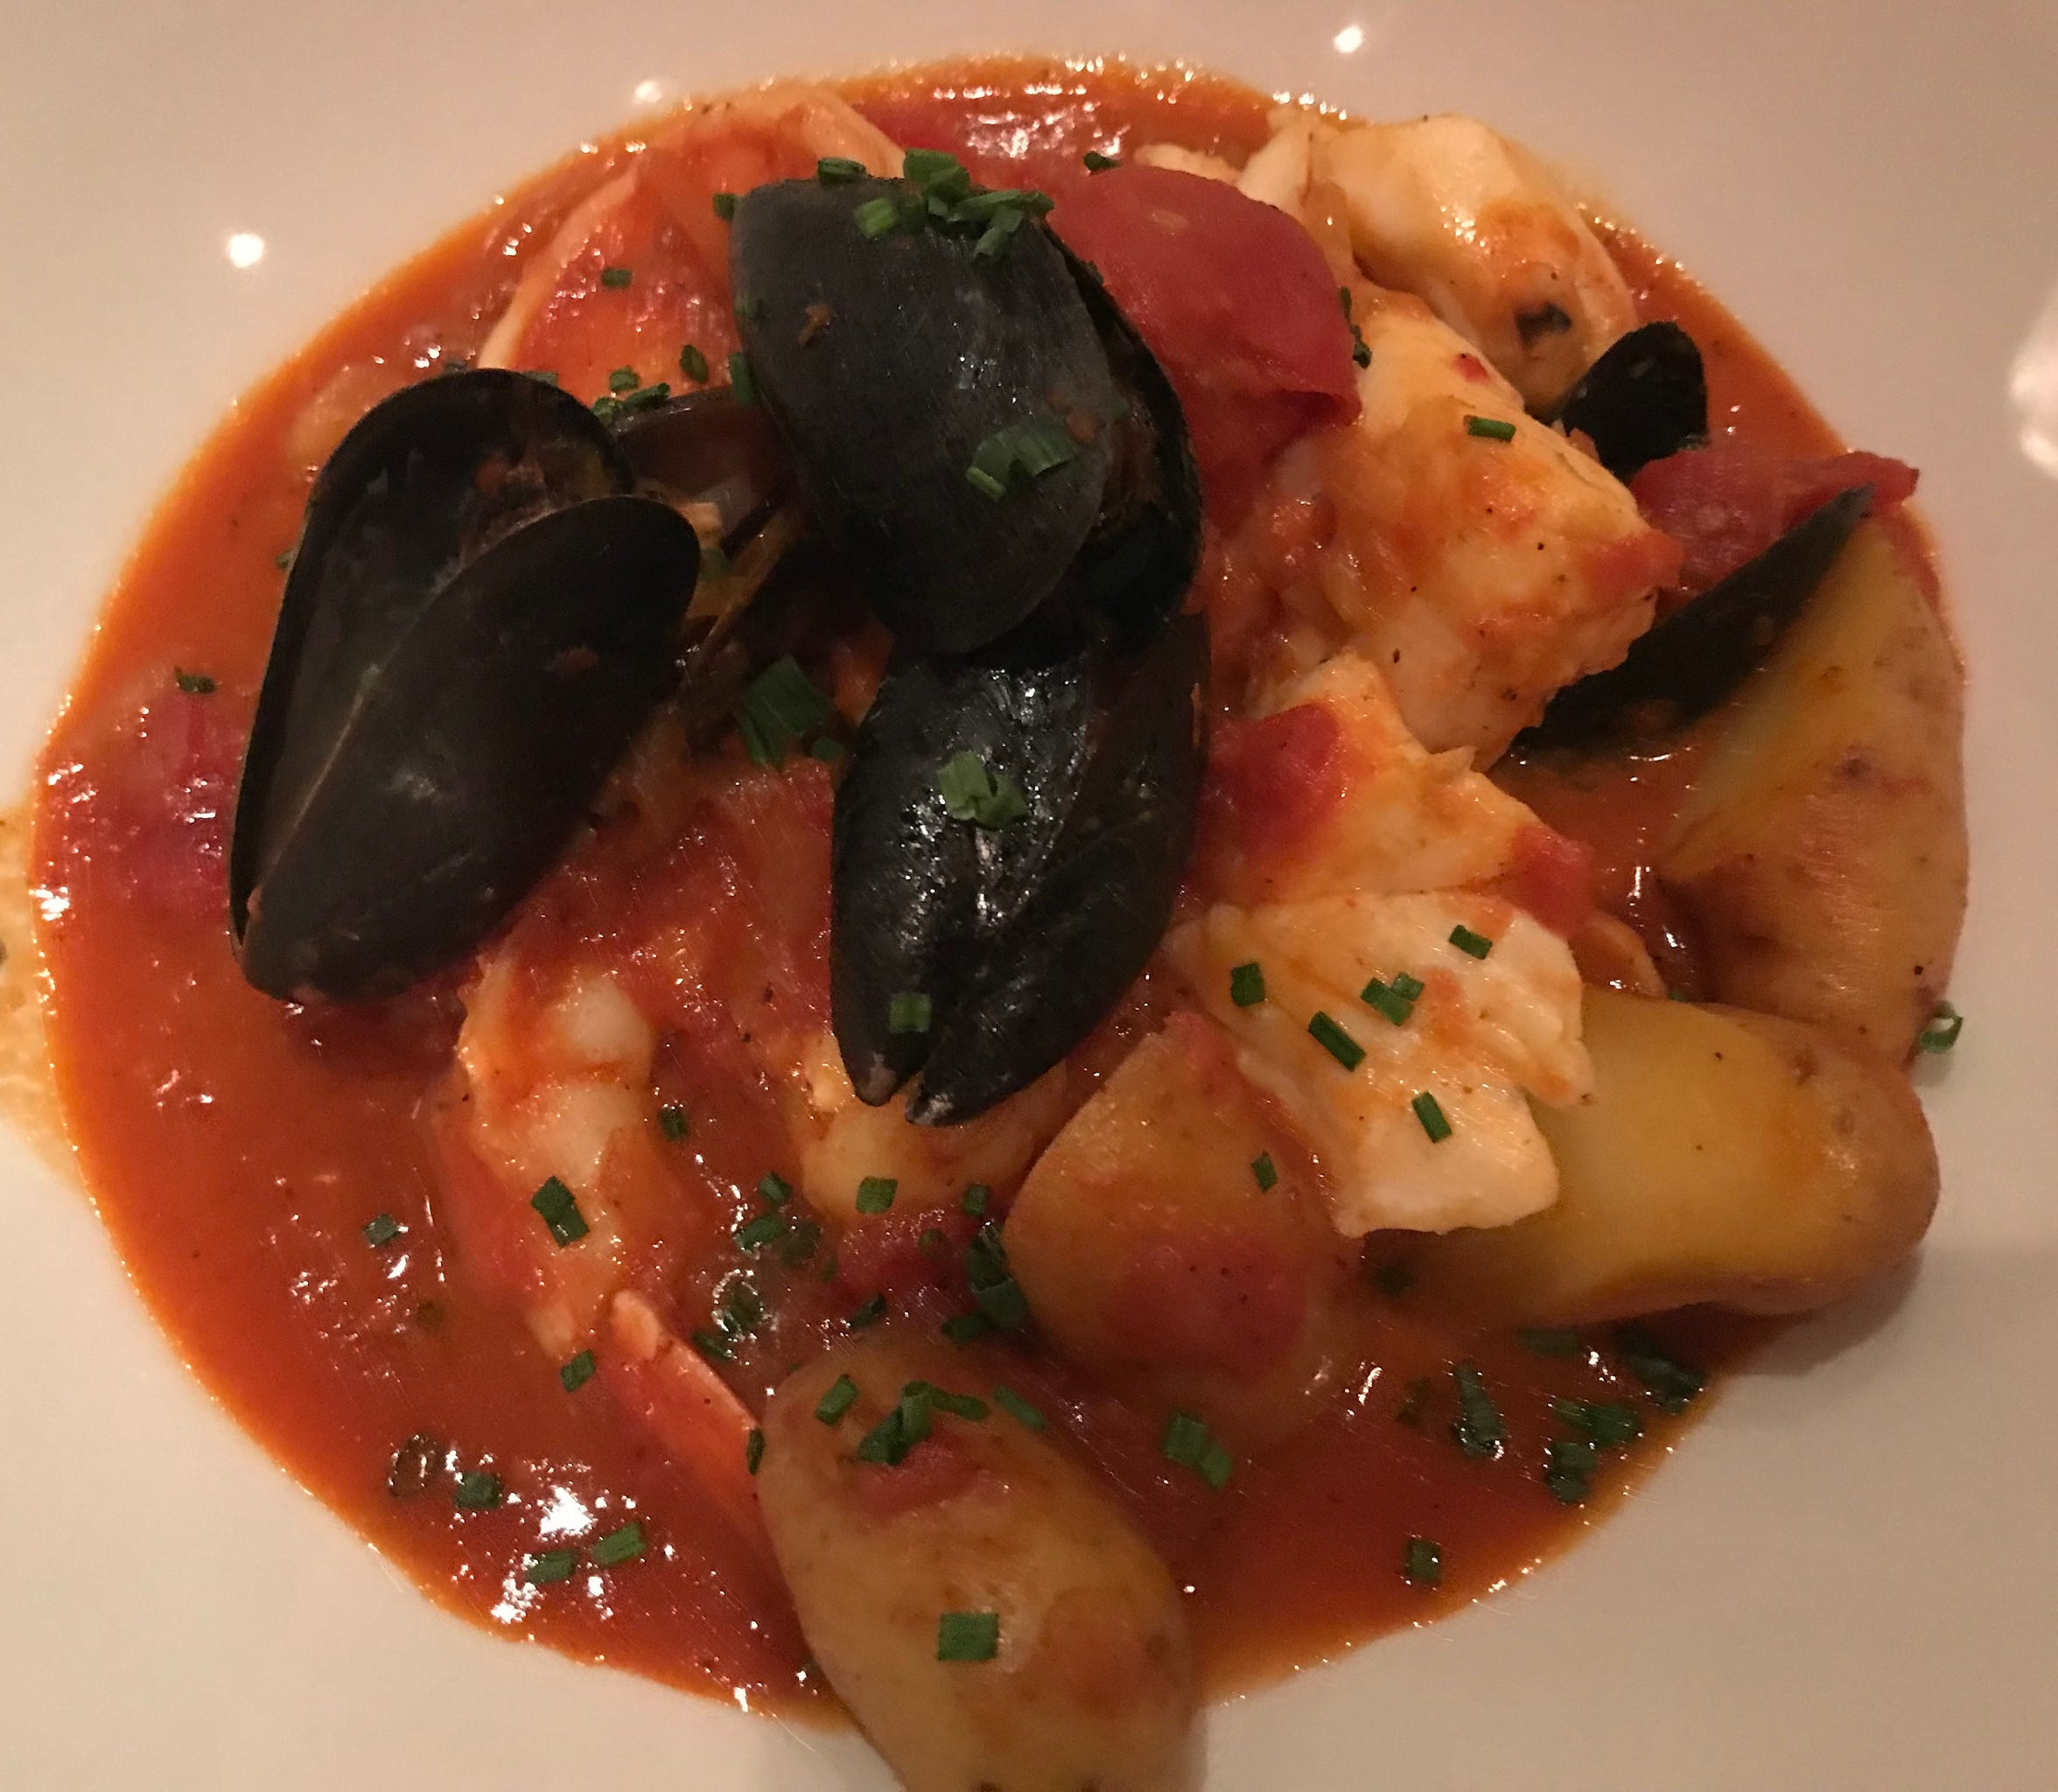 Pastiche at Hotel Metro, 411 E. Mason St., added Midwestern flavor by way of walleye to the classic French fish stew bouillabaisse, a dinner special.